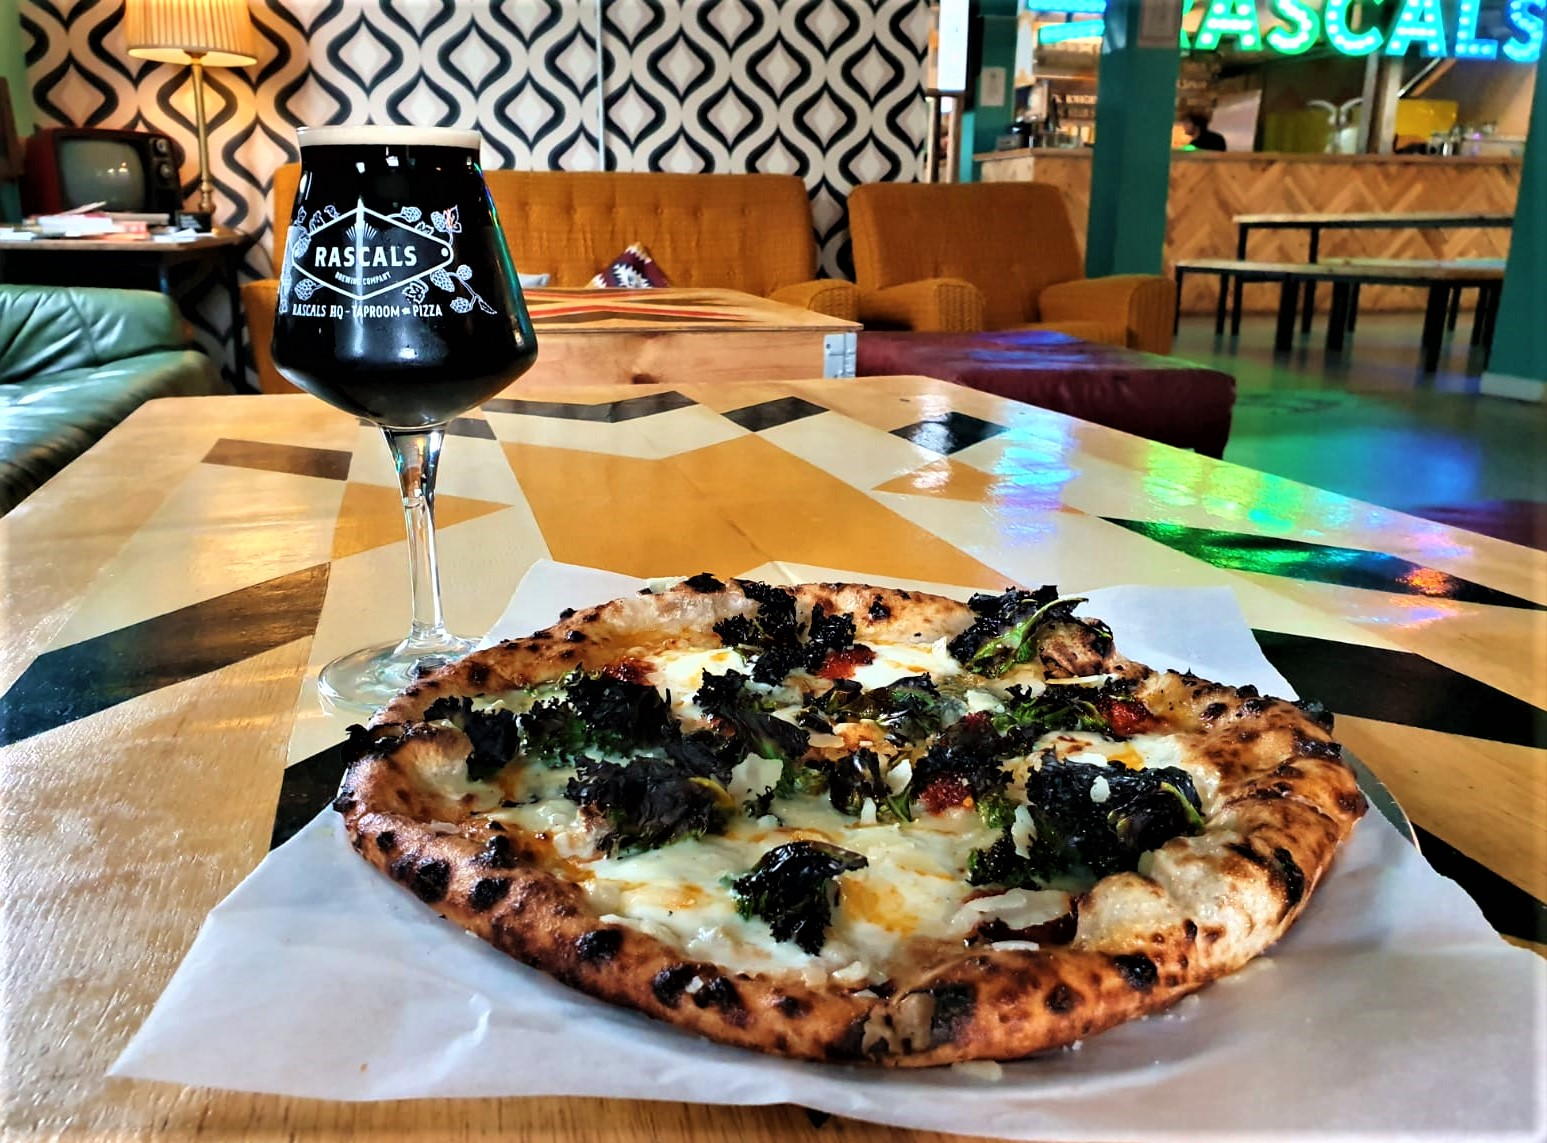 Tasty Irish craft beer from Rascals Brewing and a fresh wood-fired pizza, the best in Dublin